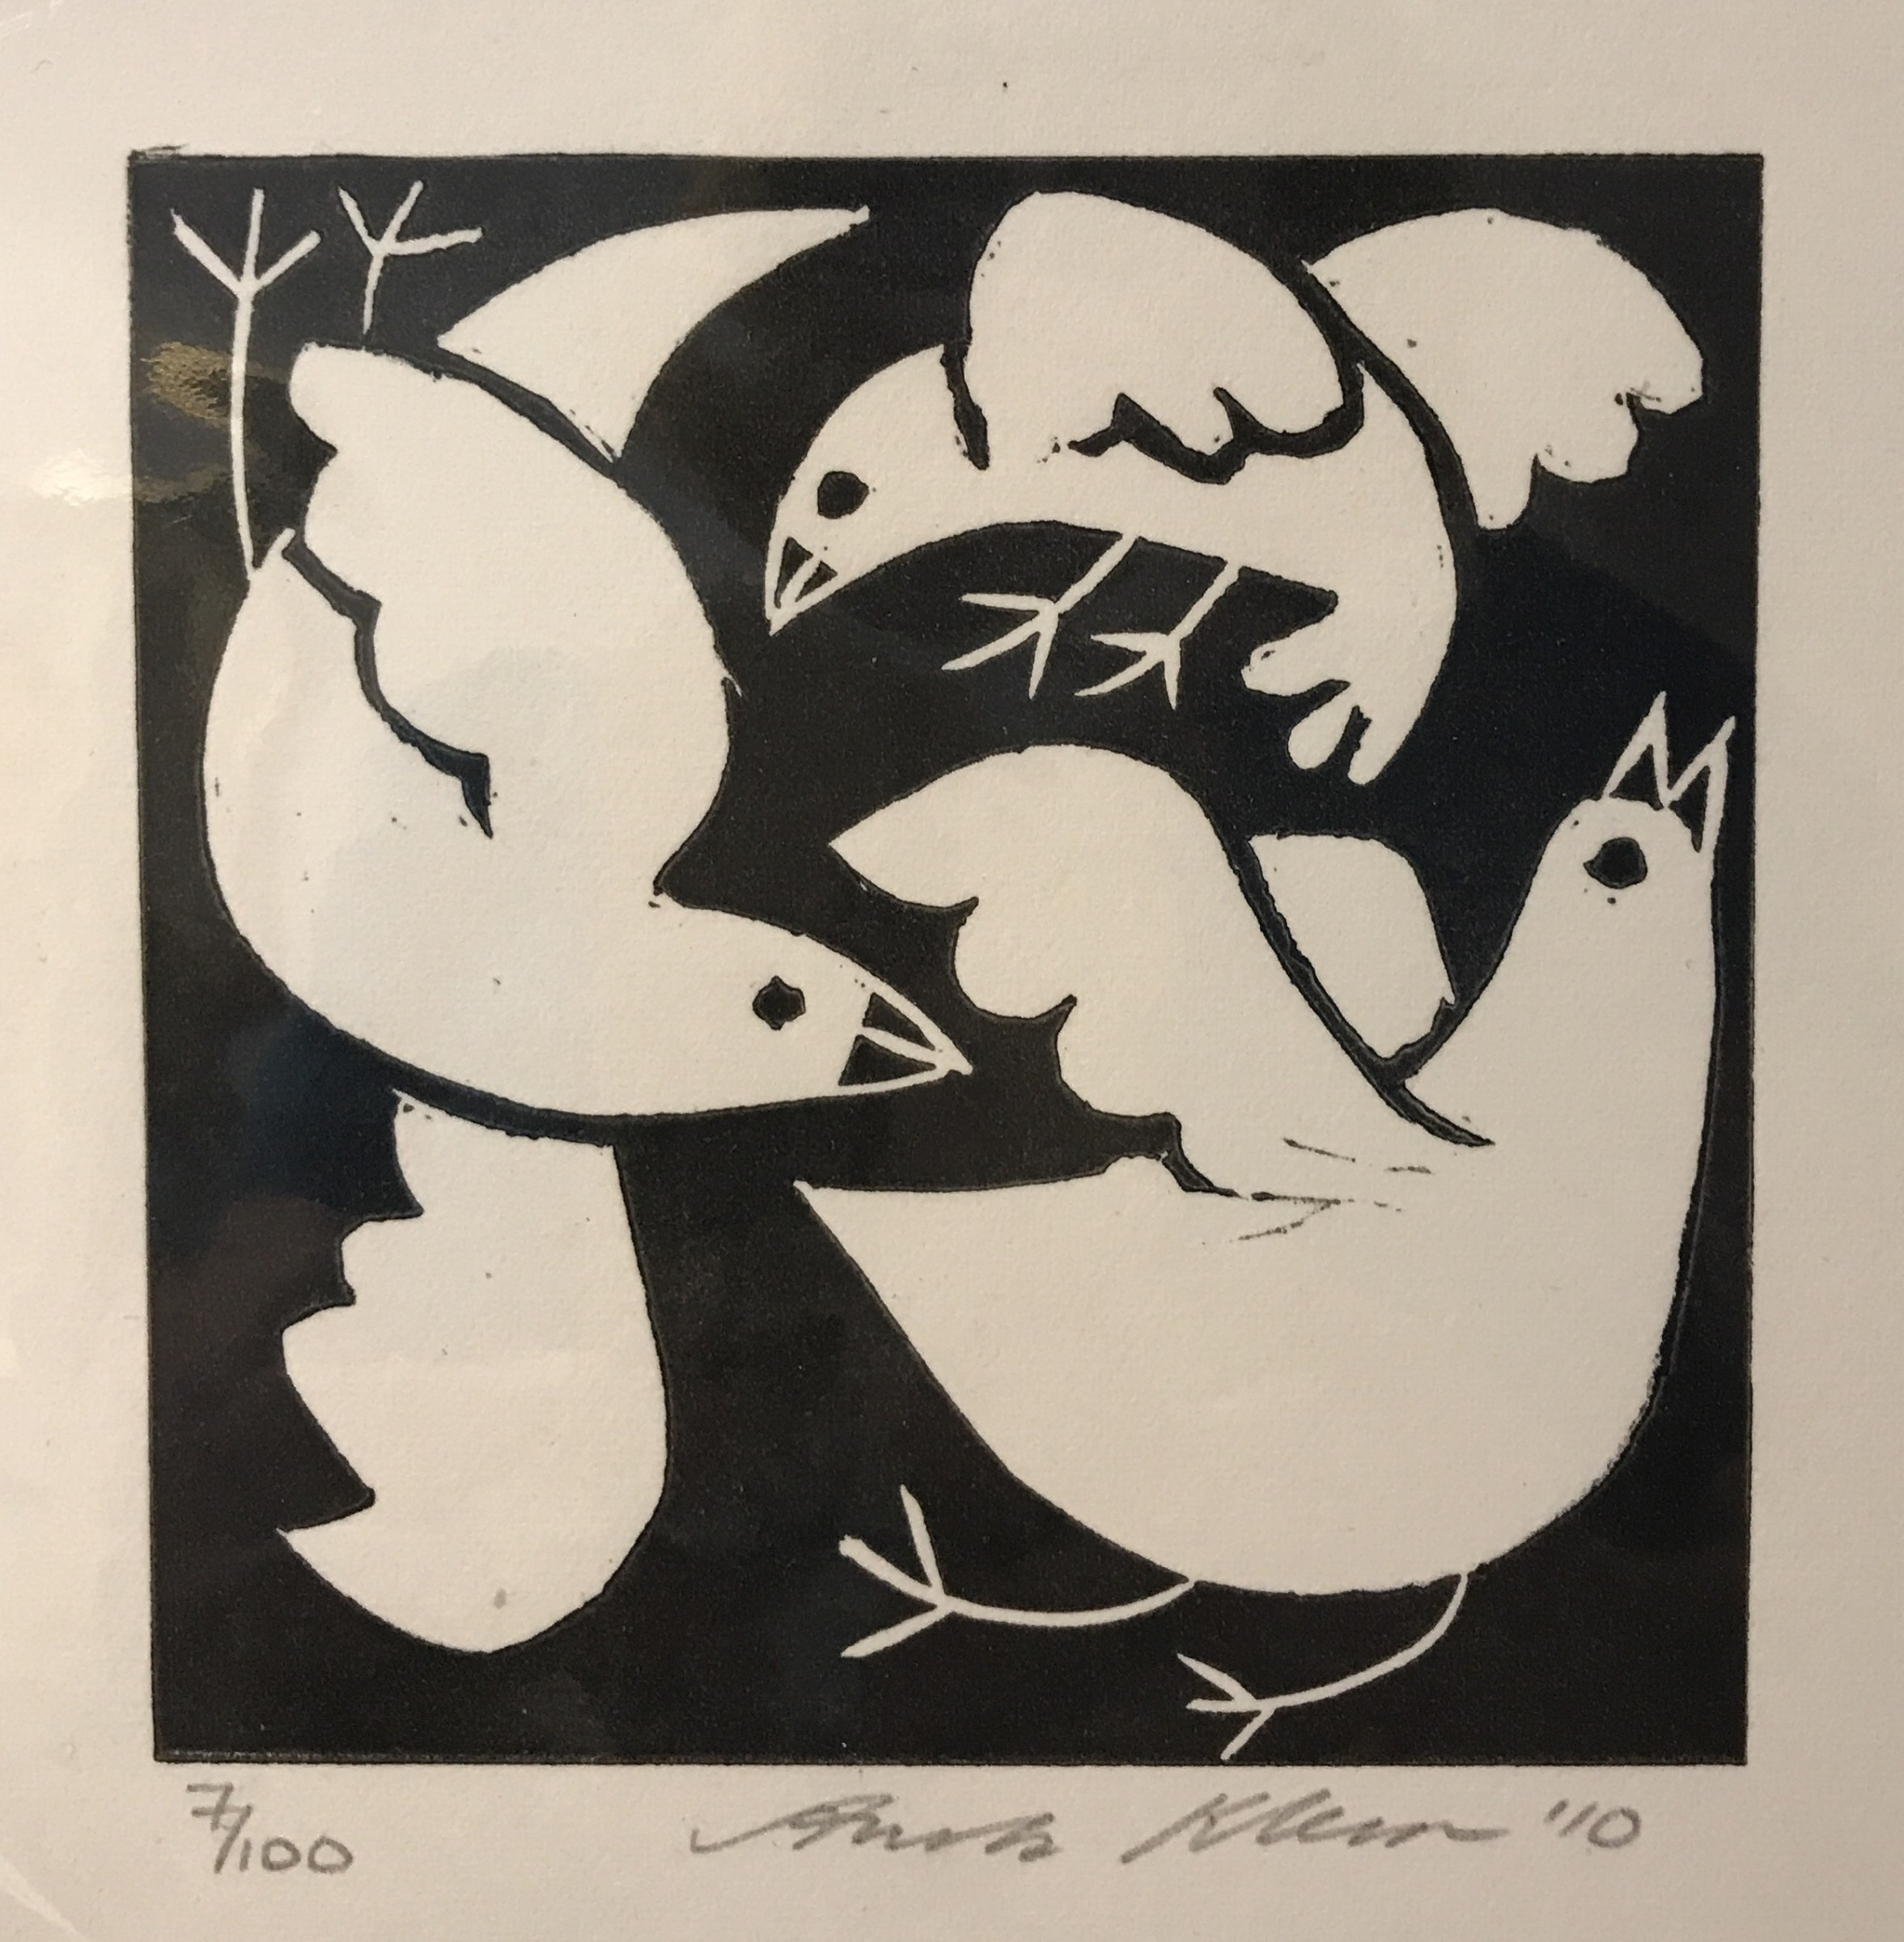 <span class=&#34;link fancybox-details-link&#34;><a href=&#34;/artists/32-anita-klein/works/65-anita-klein-swooping-birds/&#34;>View Detail Page</a></span><div class=&#34;artist&#34;><strong>Anita Klein</strong></div> <div class=&#34;title&#34;><em>Swooping Birds</em></div> <div class=&#34;medium&#34;>Linocut</div> <div class=&#34;dimensions&#34;>22 x 21 cm framed</div> <div class=&#34;edition_details&#34;>7/100</div>